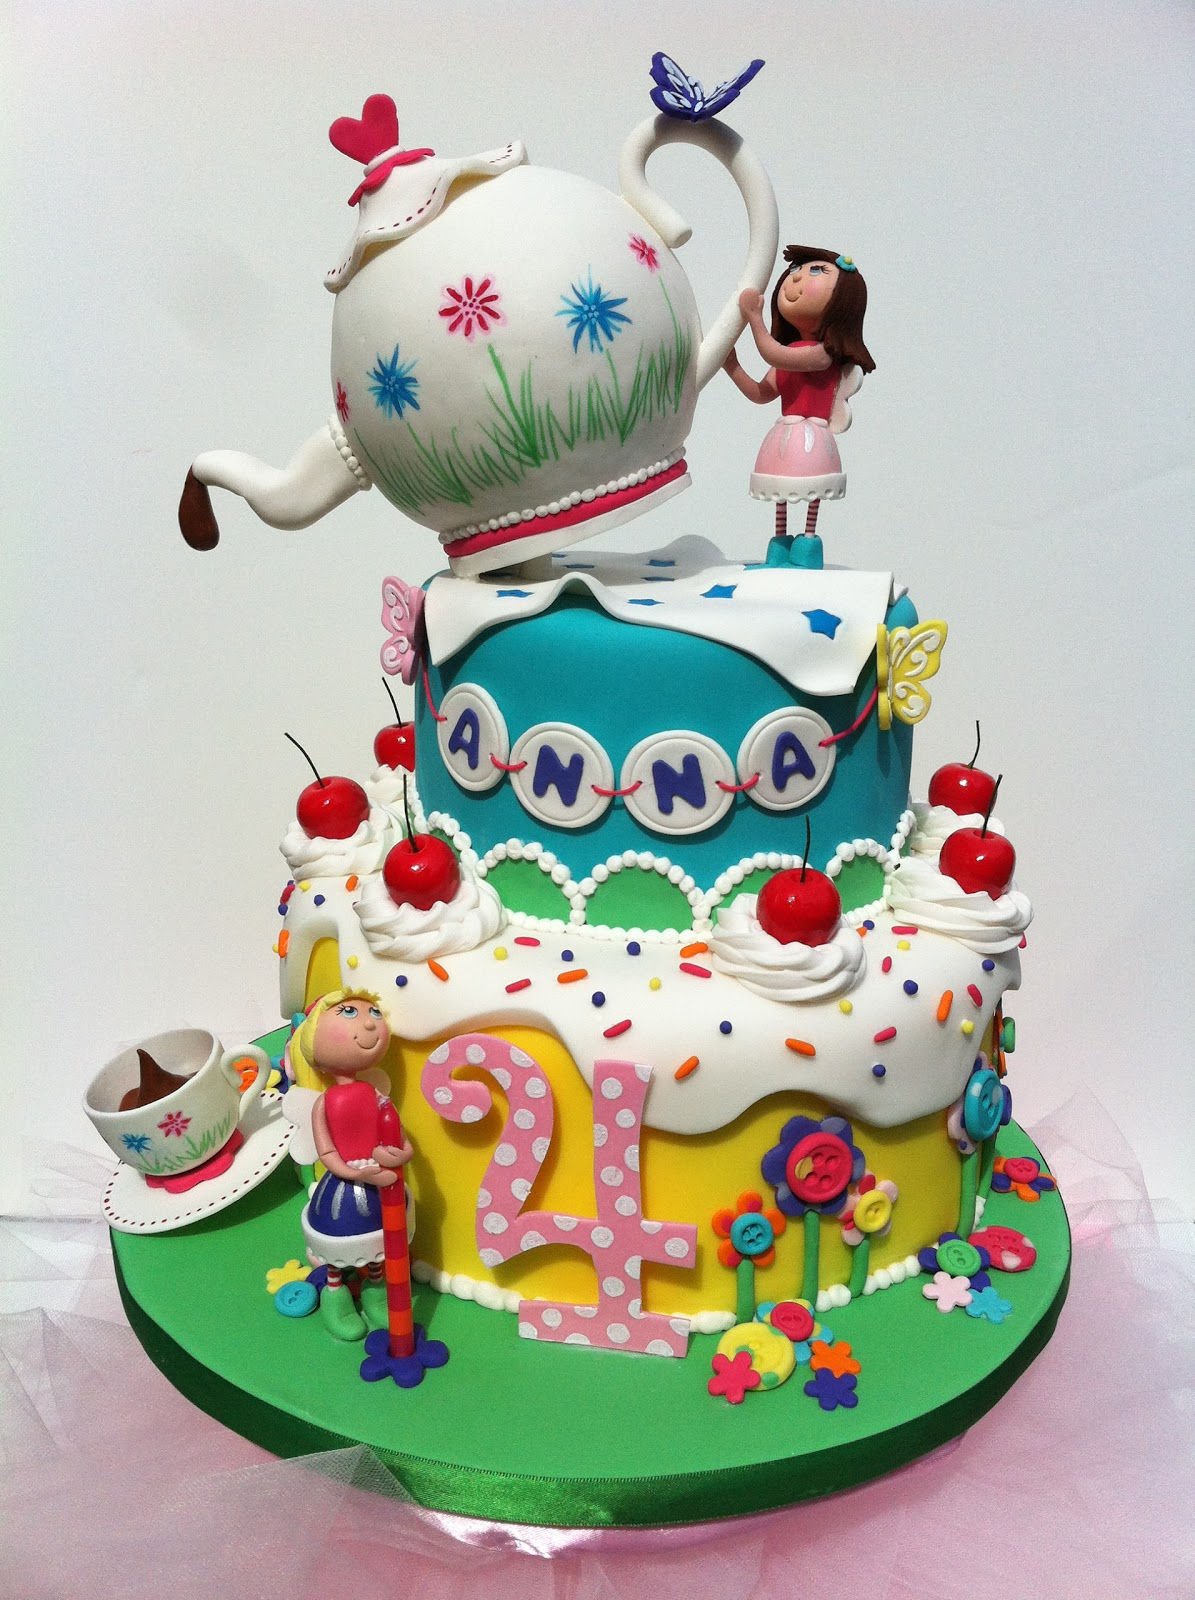 Tea Party Cake Images : Whimsical by Design: Washington State Cake Show 2012 - A ...